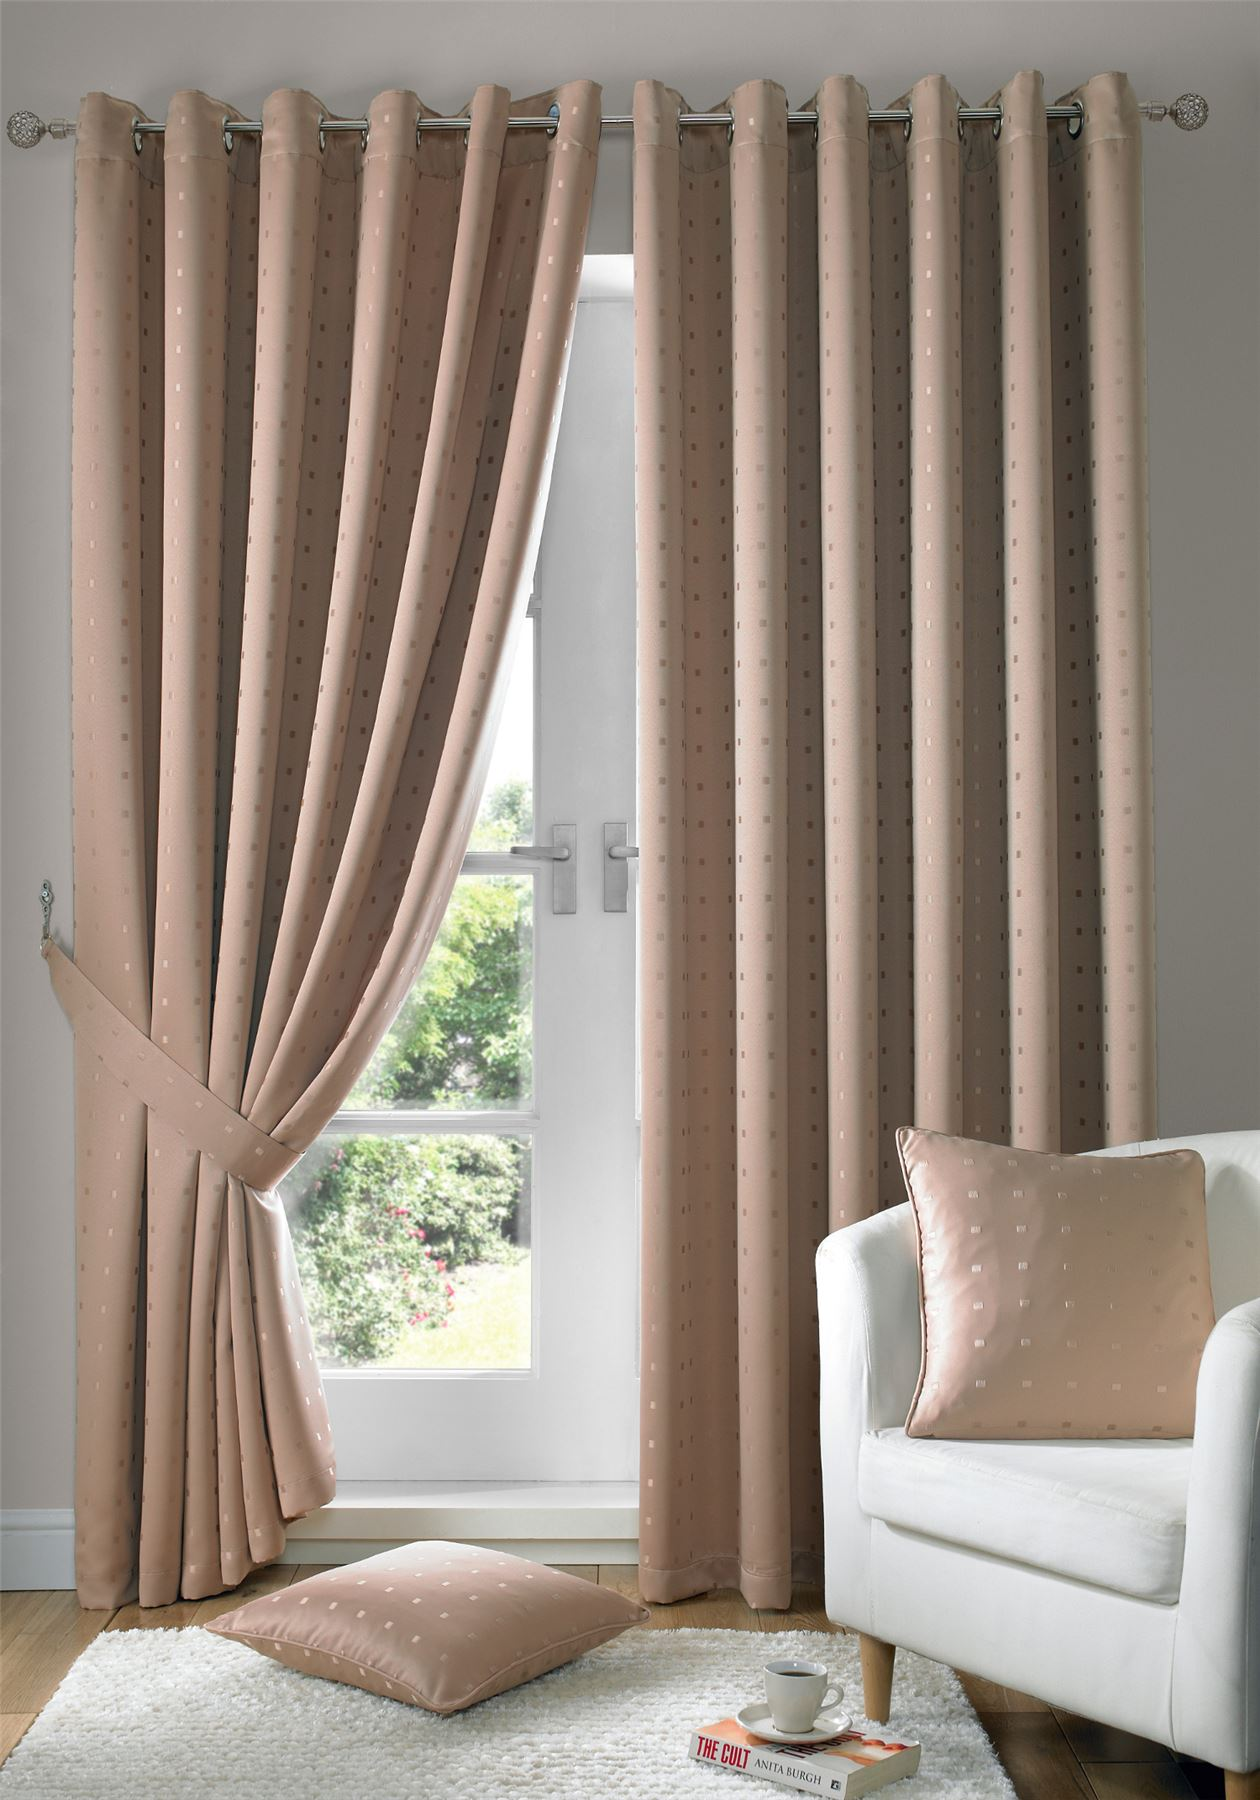 jacquard check latte beige lined ring top eyelet curtains. Black Bedroom Furniture Sets. Home Design Ideas